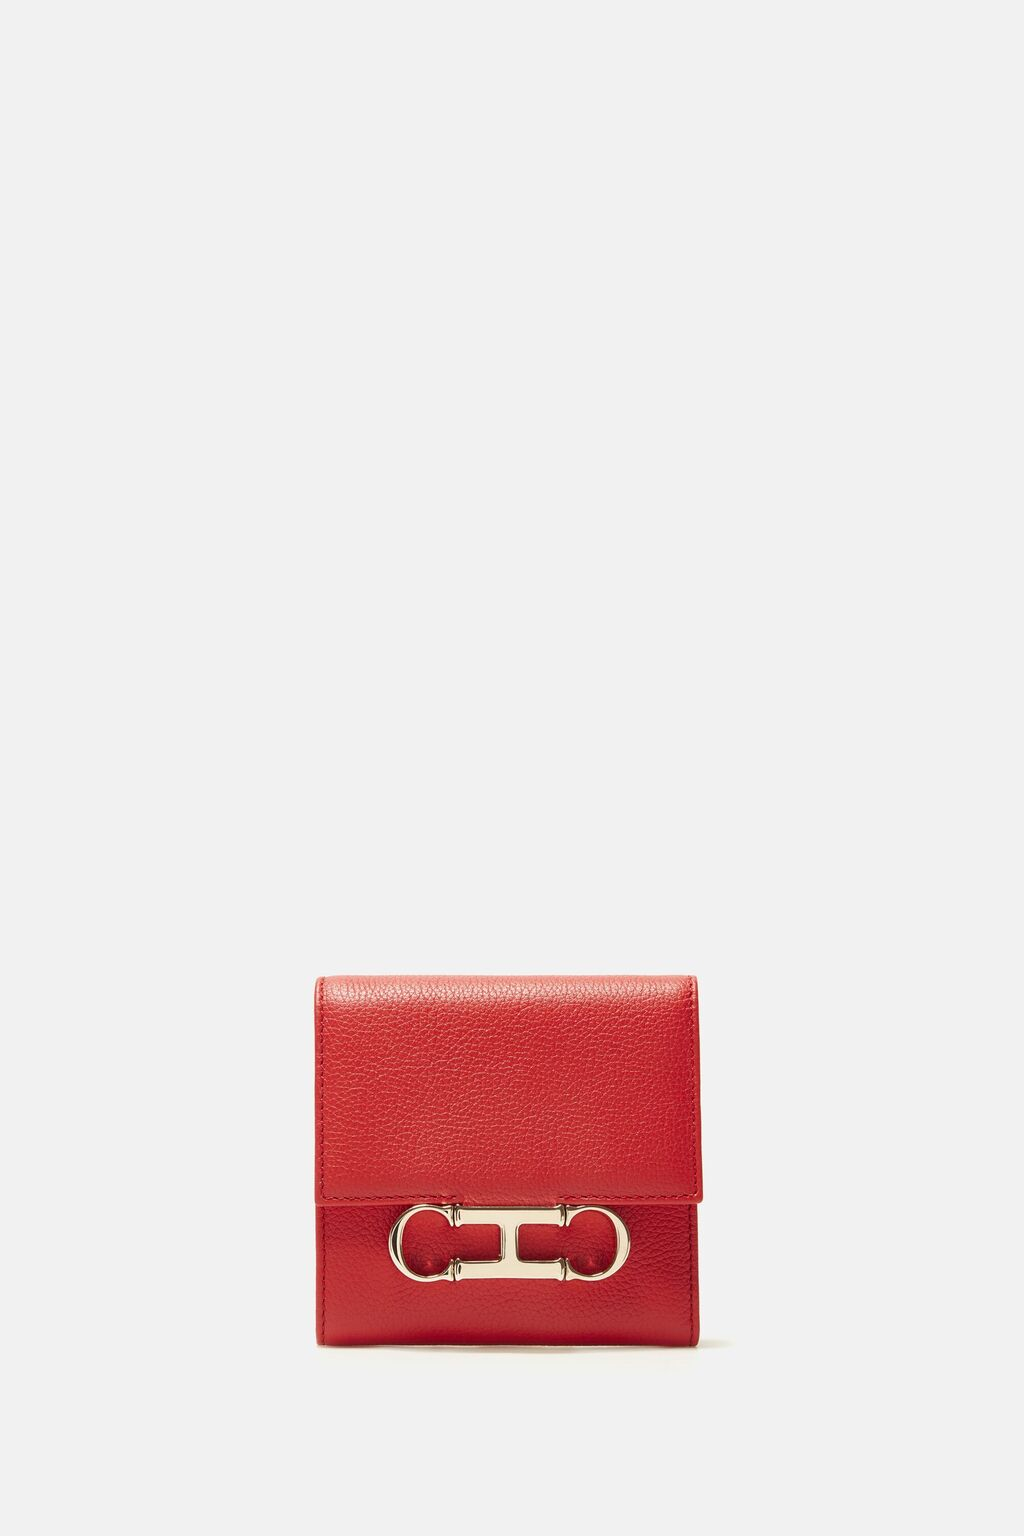 Initials Insignia | Japanese flap wallet